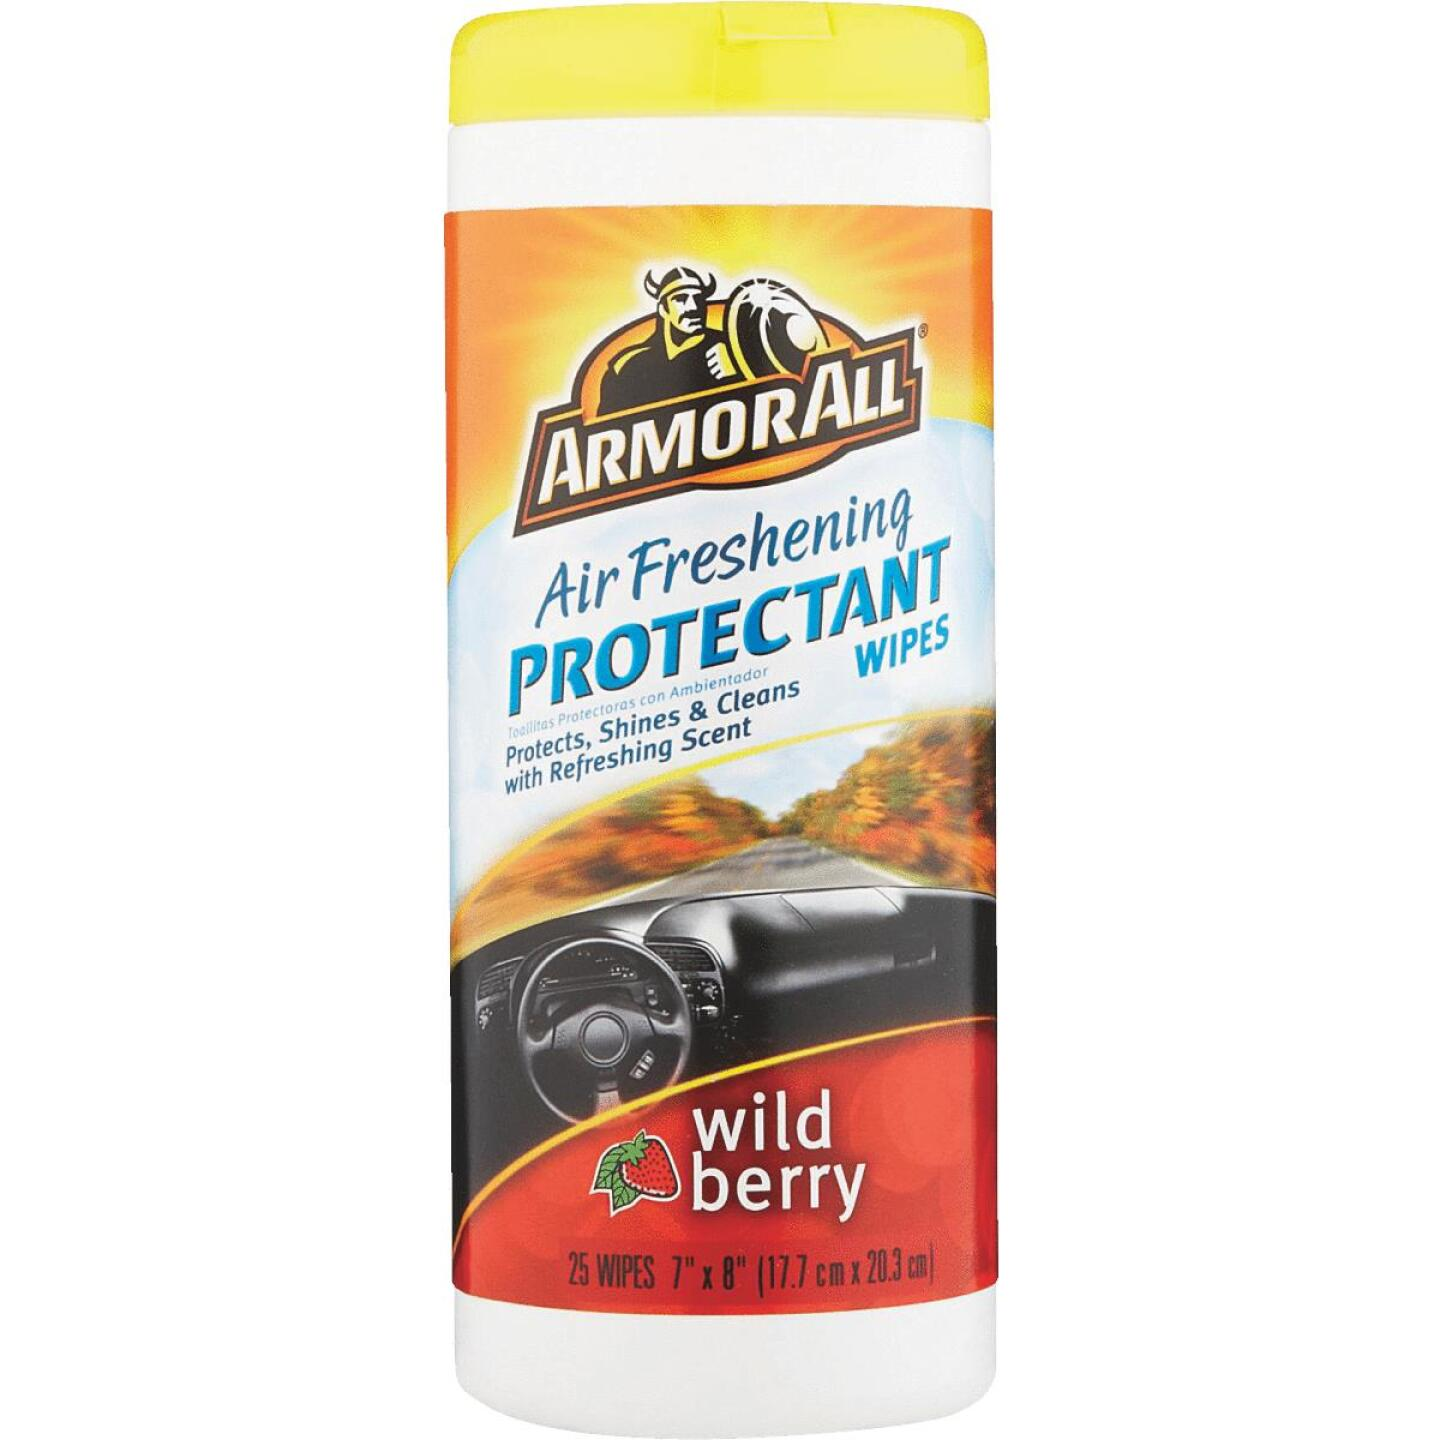 Armor All Wild Berry Scent Protectant Wipe Image 2